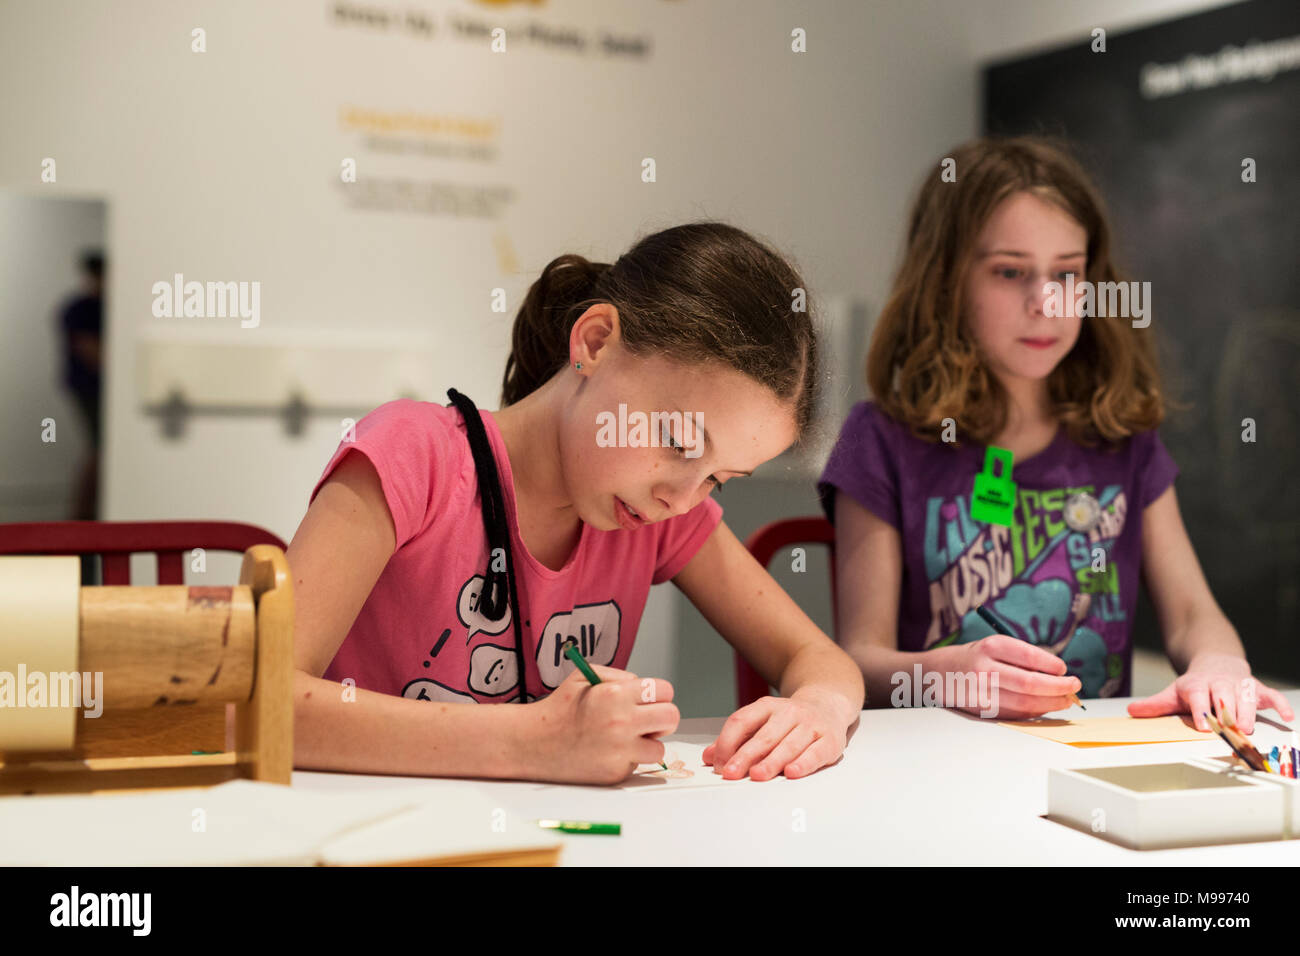 Two school age children (girls) drawing - Stock Image